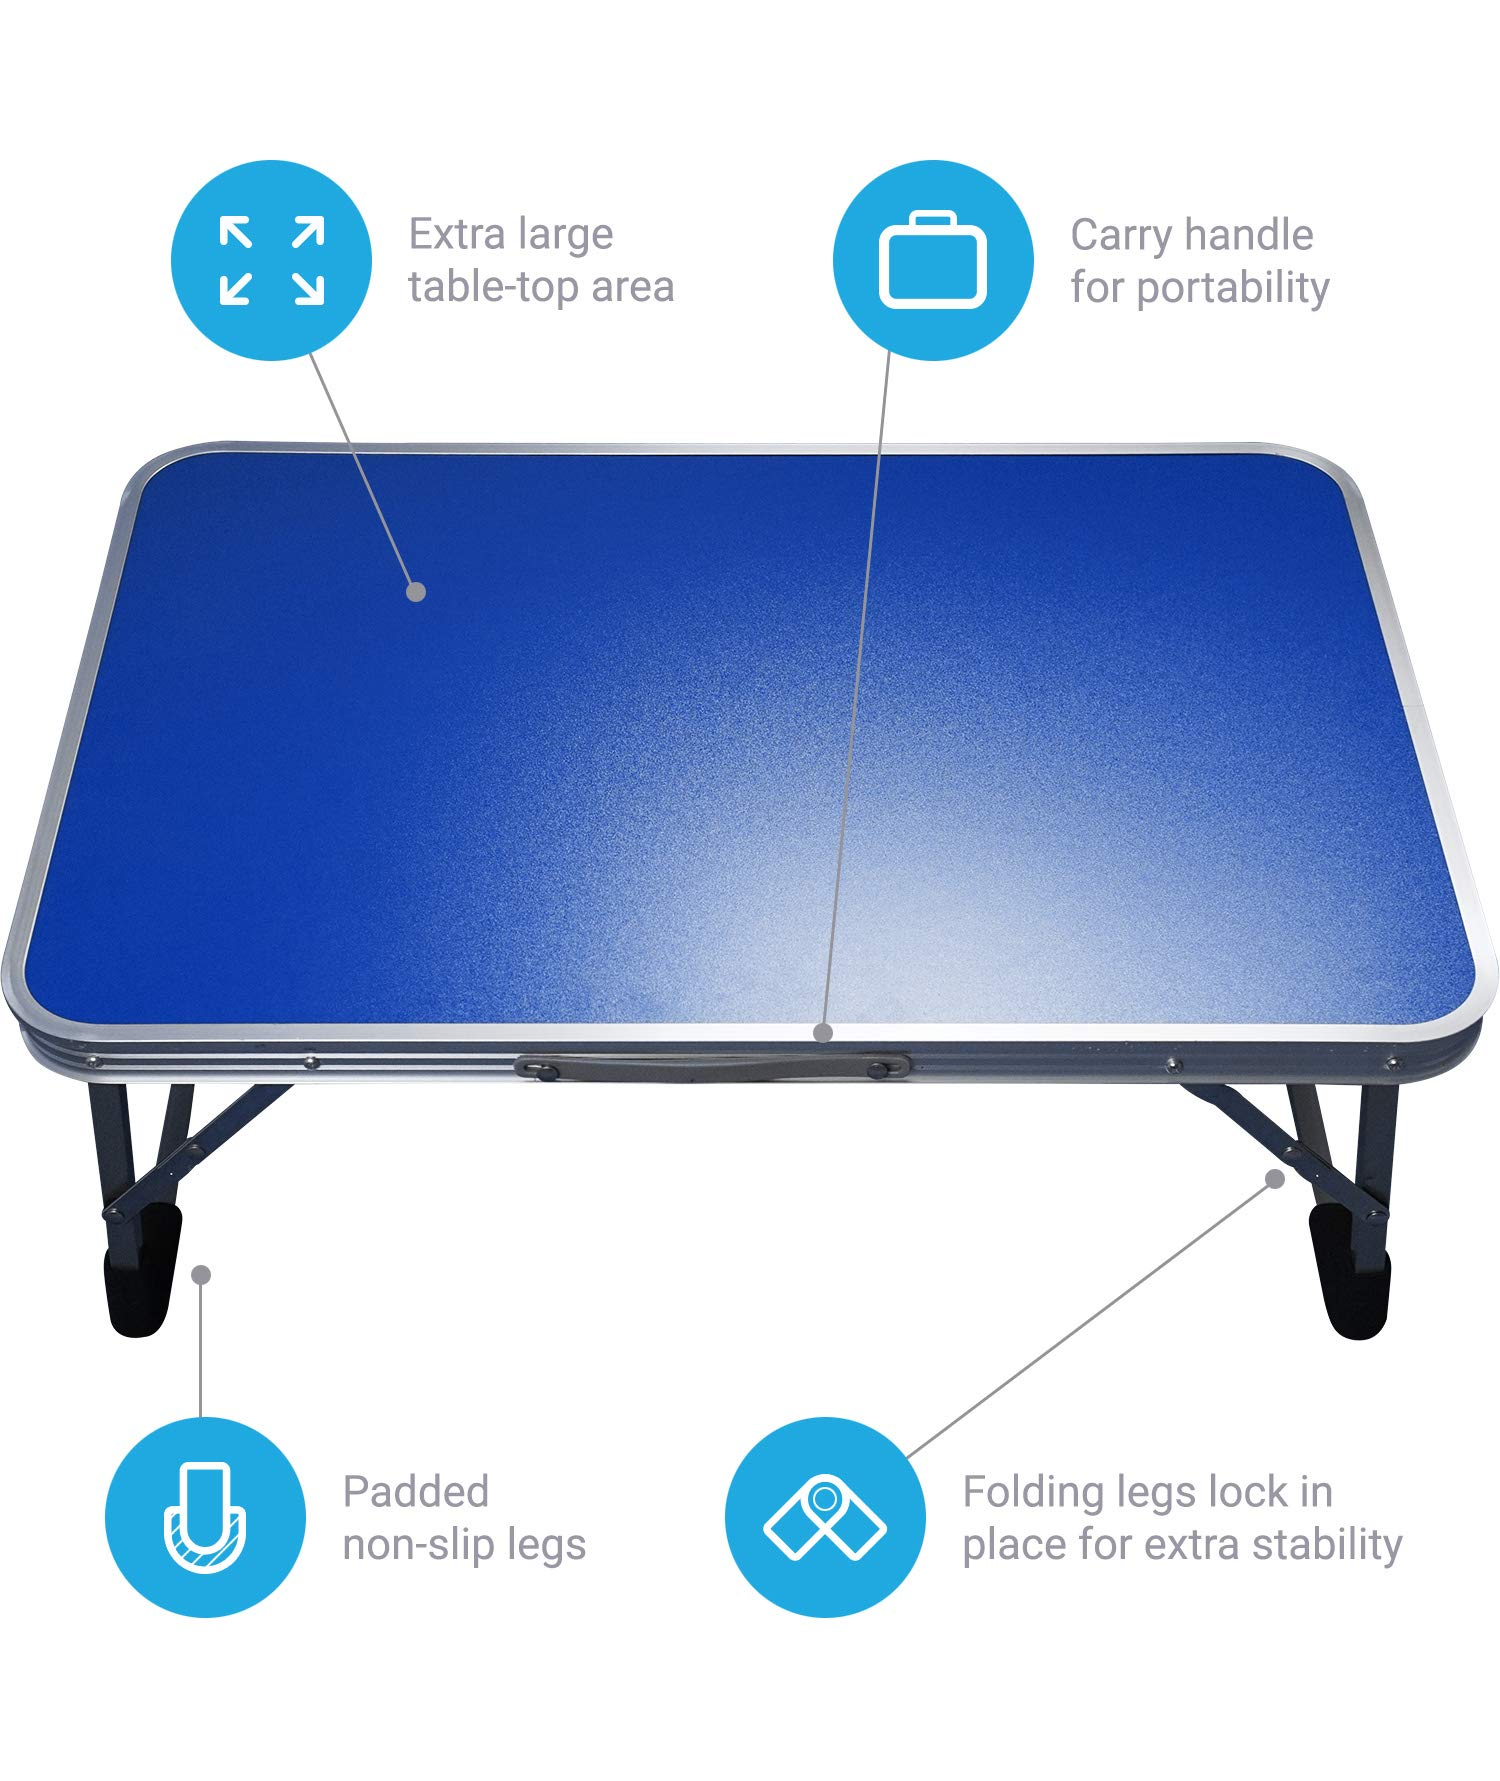 Extra Large Folding Desk Tray - Featuring Locking Foldable Leg Design and Carry Handle - for use in Bed, Computer, Picnic, or Kids Playtime by BrightCare (Image #3)